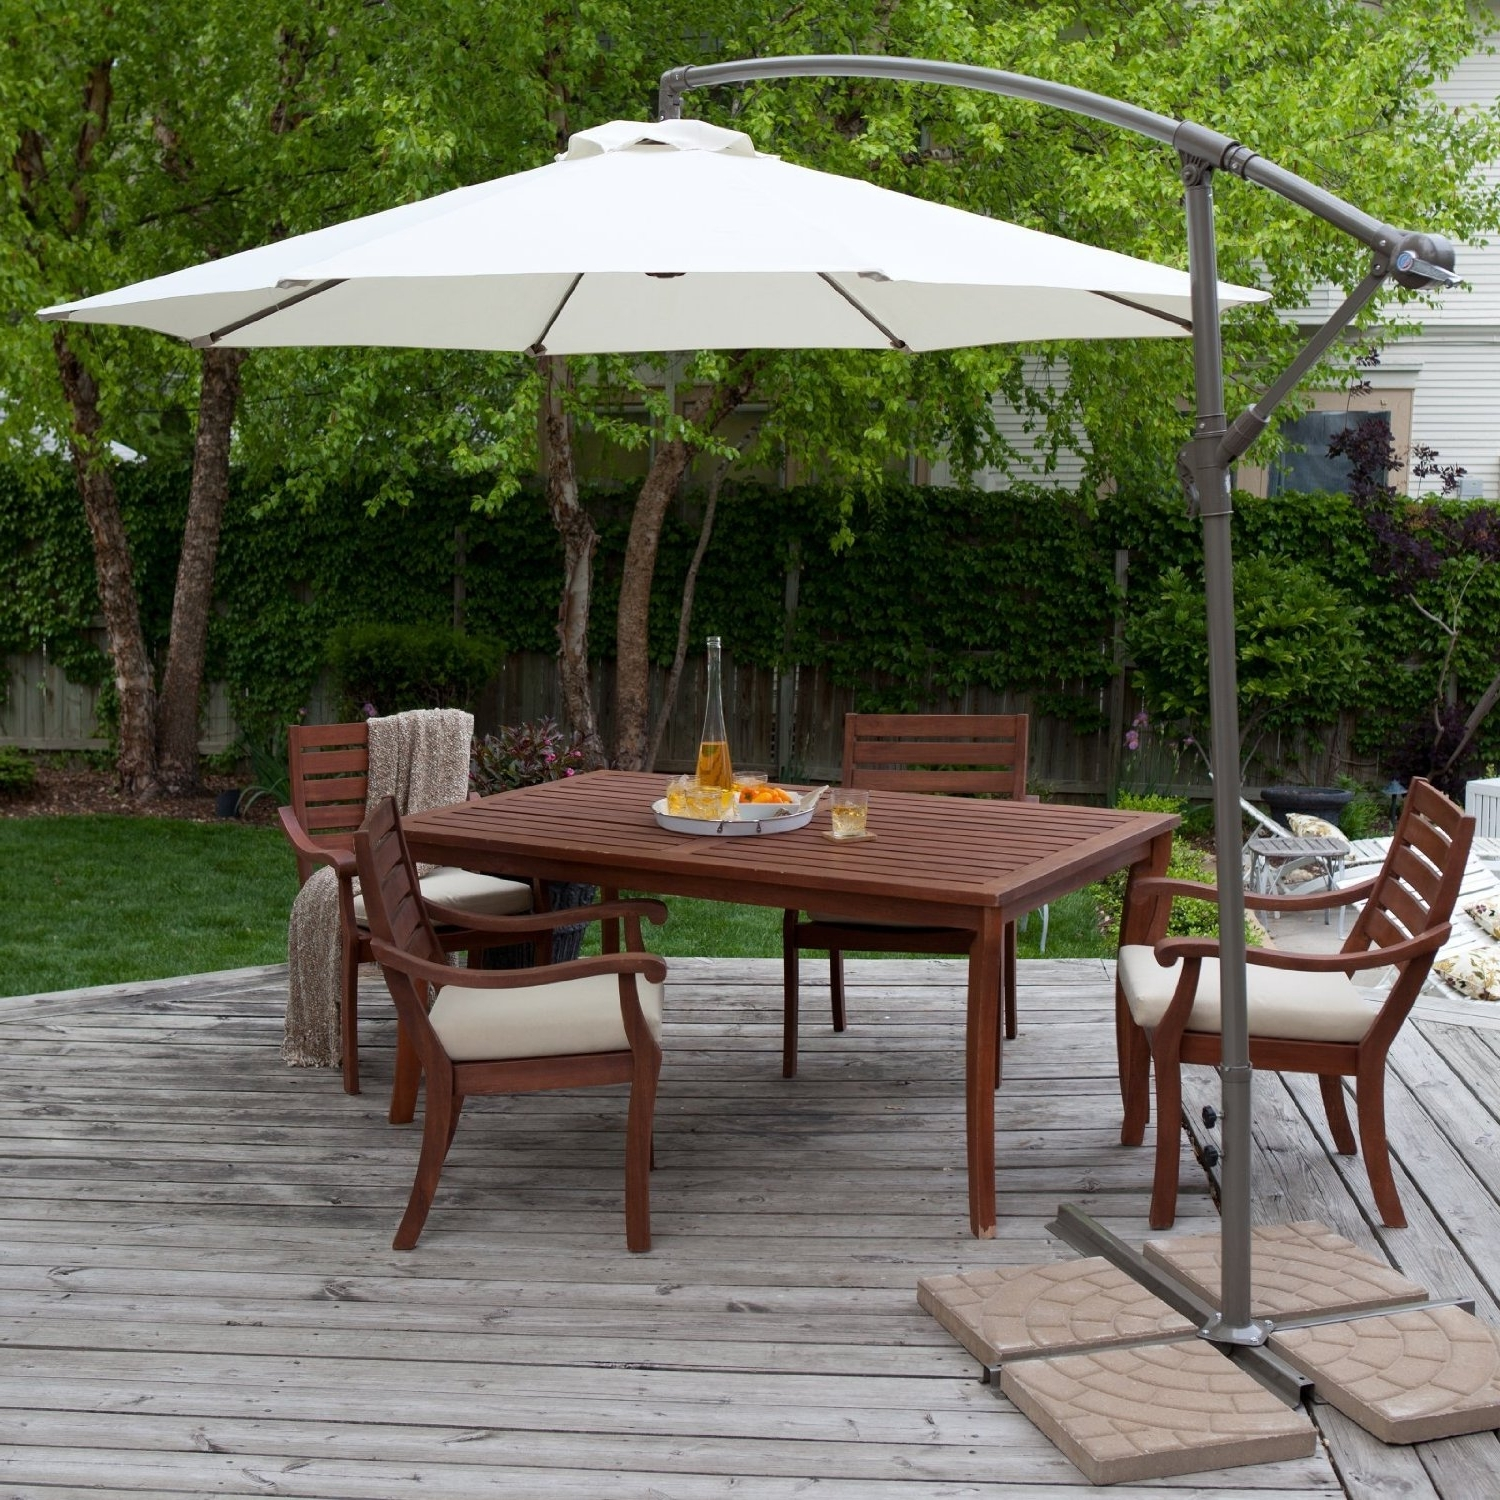 Patio Table And Chairs With Umbrellas Within Widely Used Interior : Patio Table Chairs Umbrella Set New Furniture Sets With (View 14 of 20)